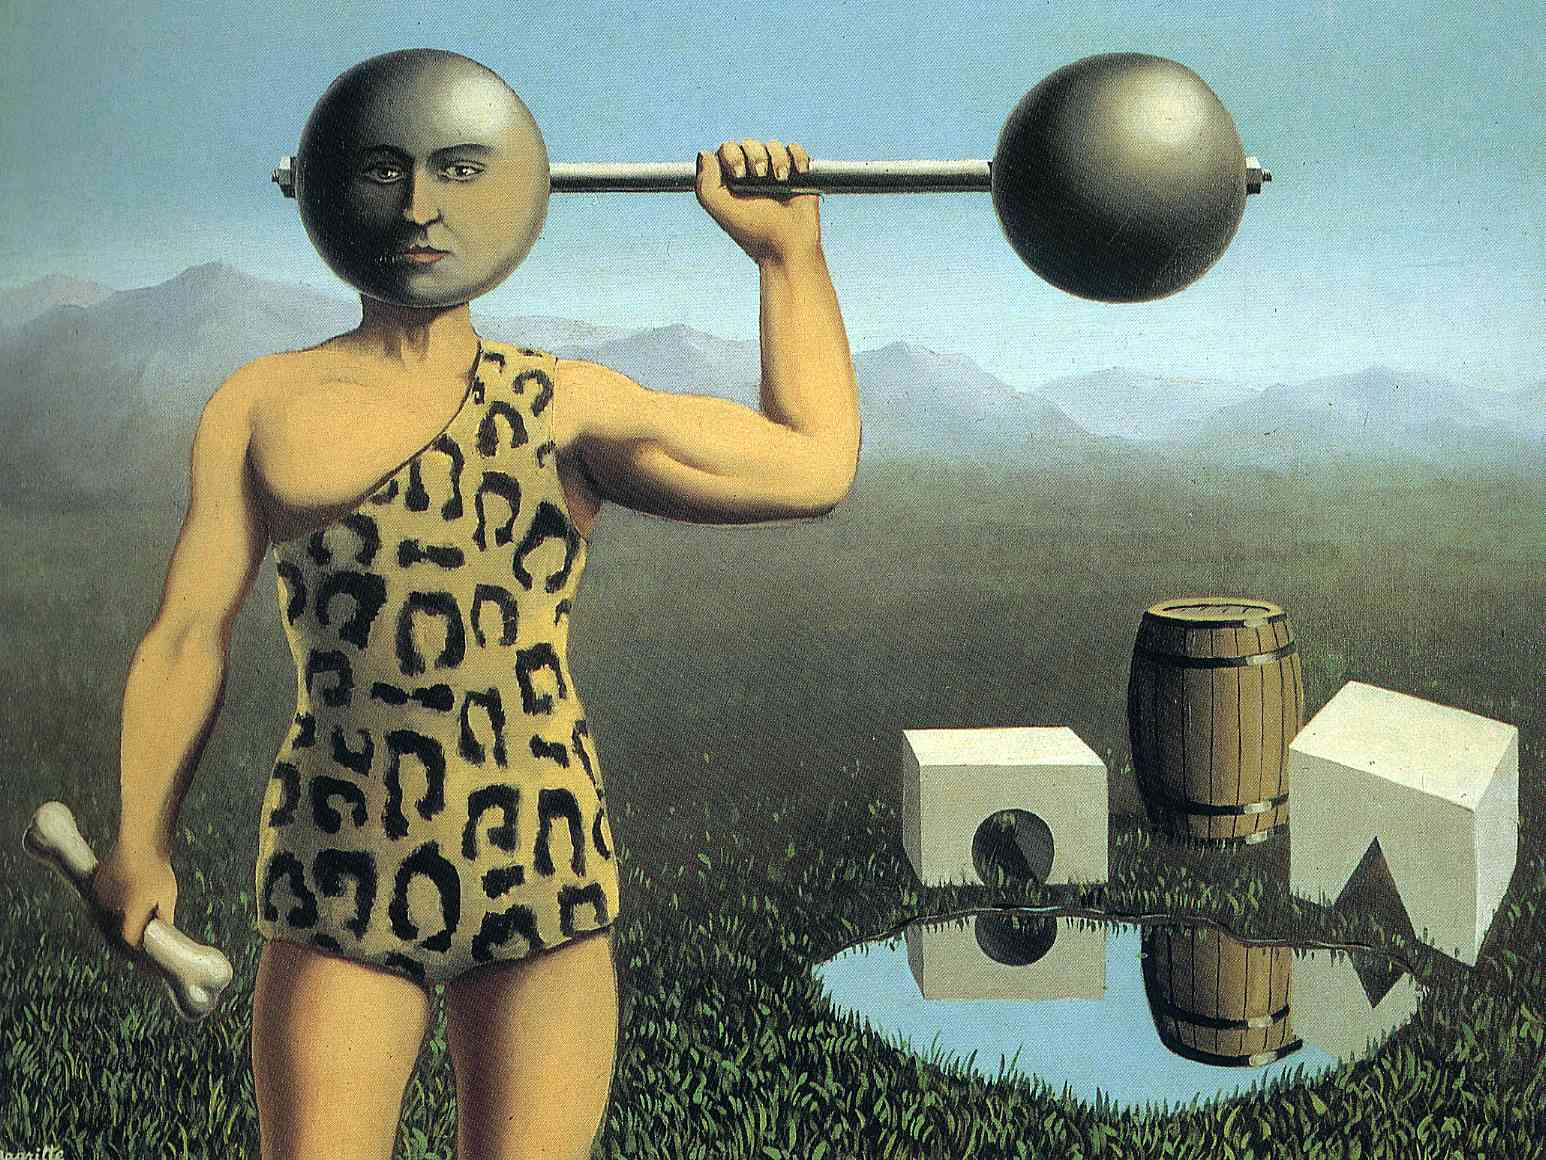 Perpetual motion, 1935 - Rene Magritte - WikiArt.org